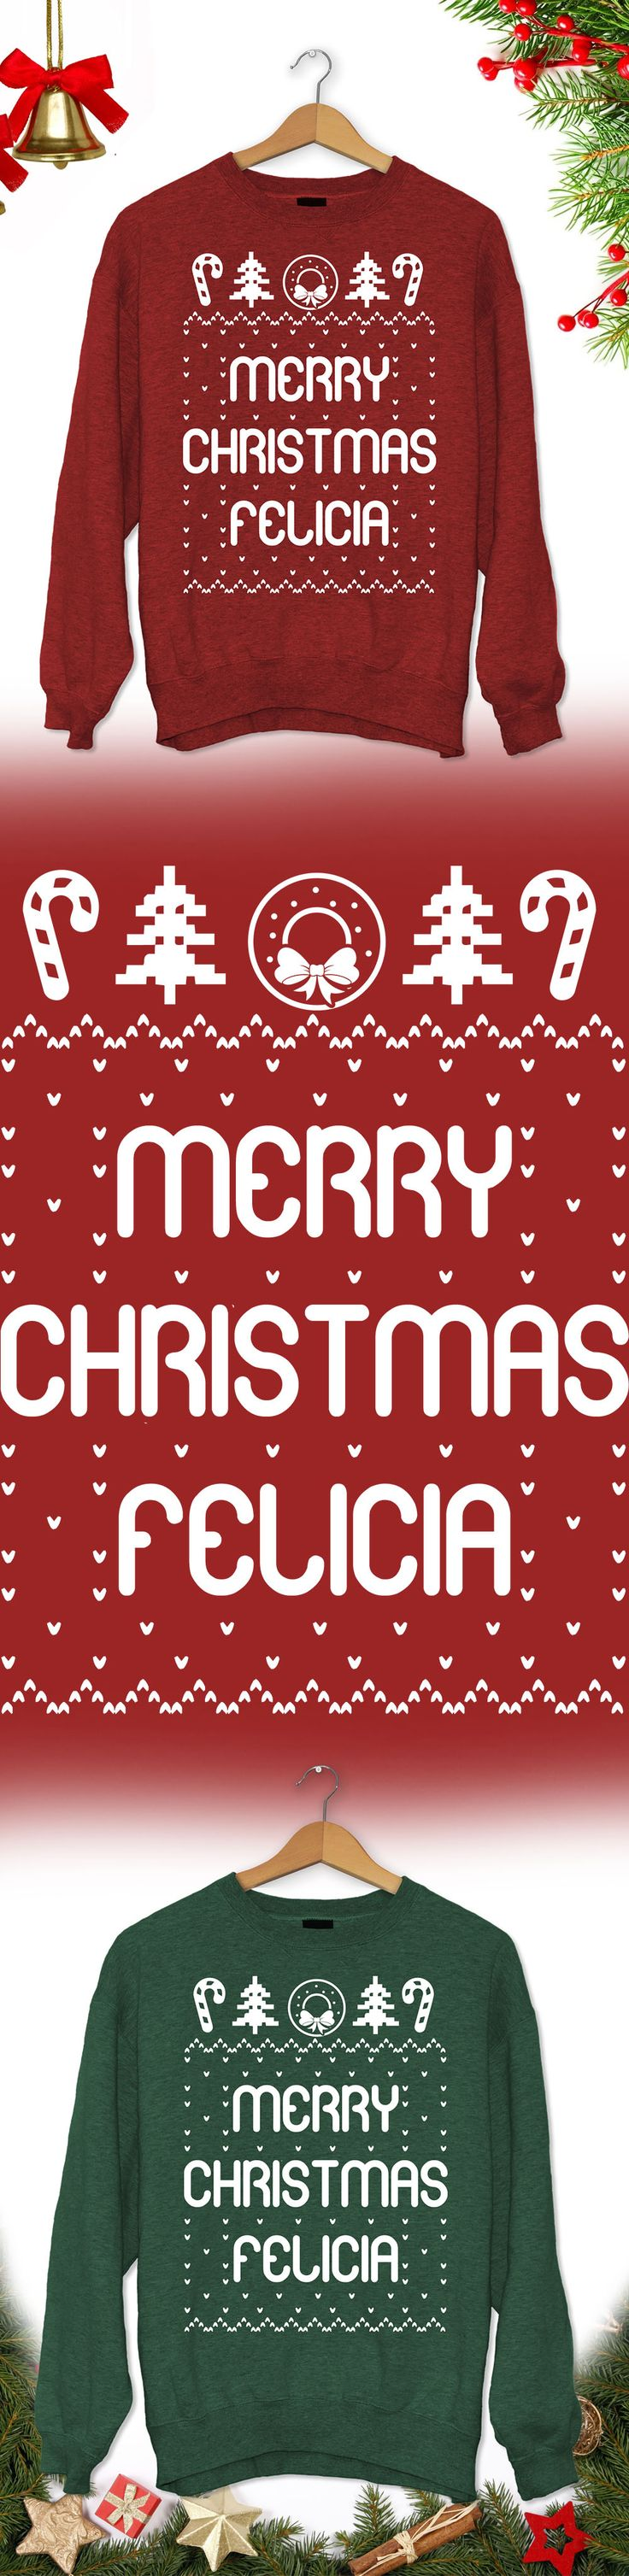 Christmas Gift Bye Felicia - Limited edition. Order 2 or more for friends/family & save on shipping! Makes a great gift!